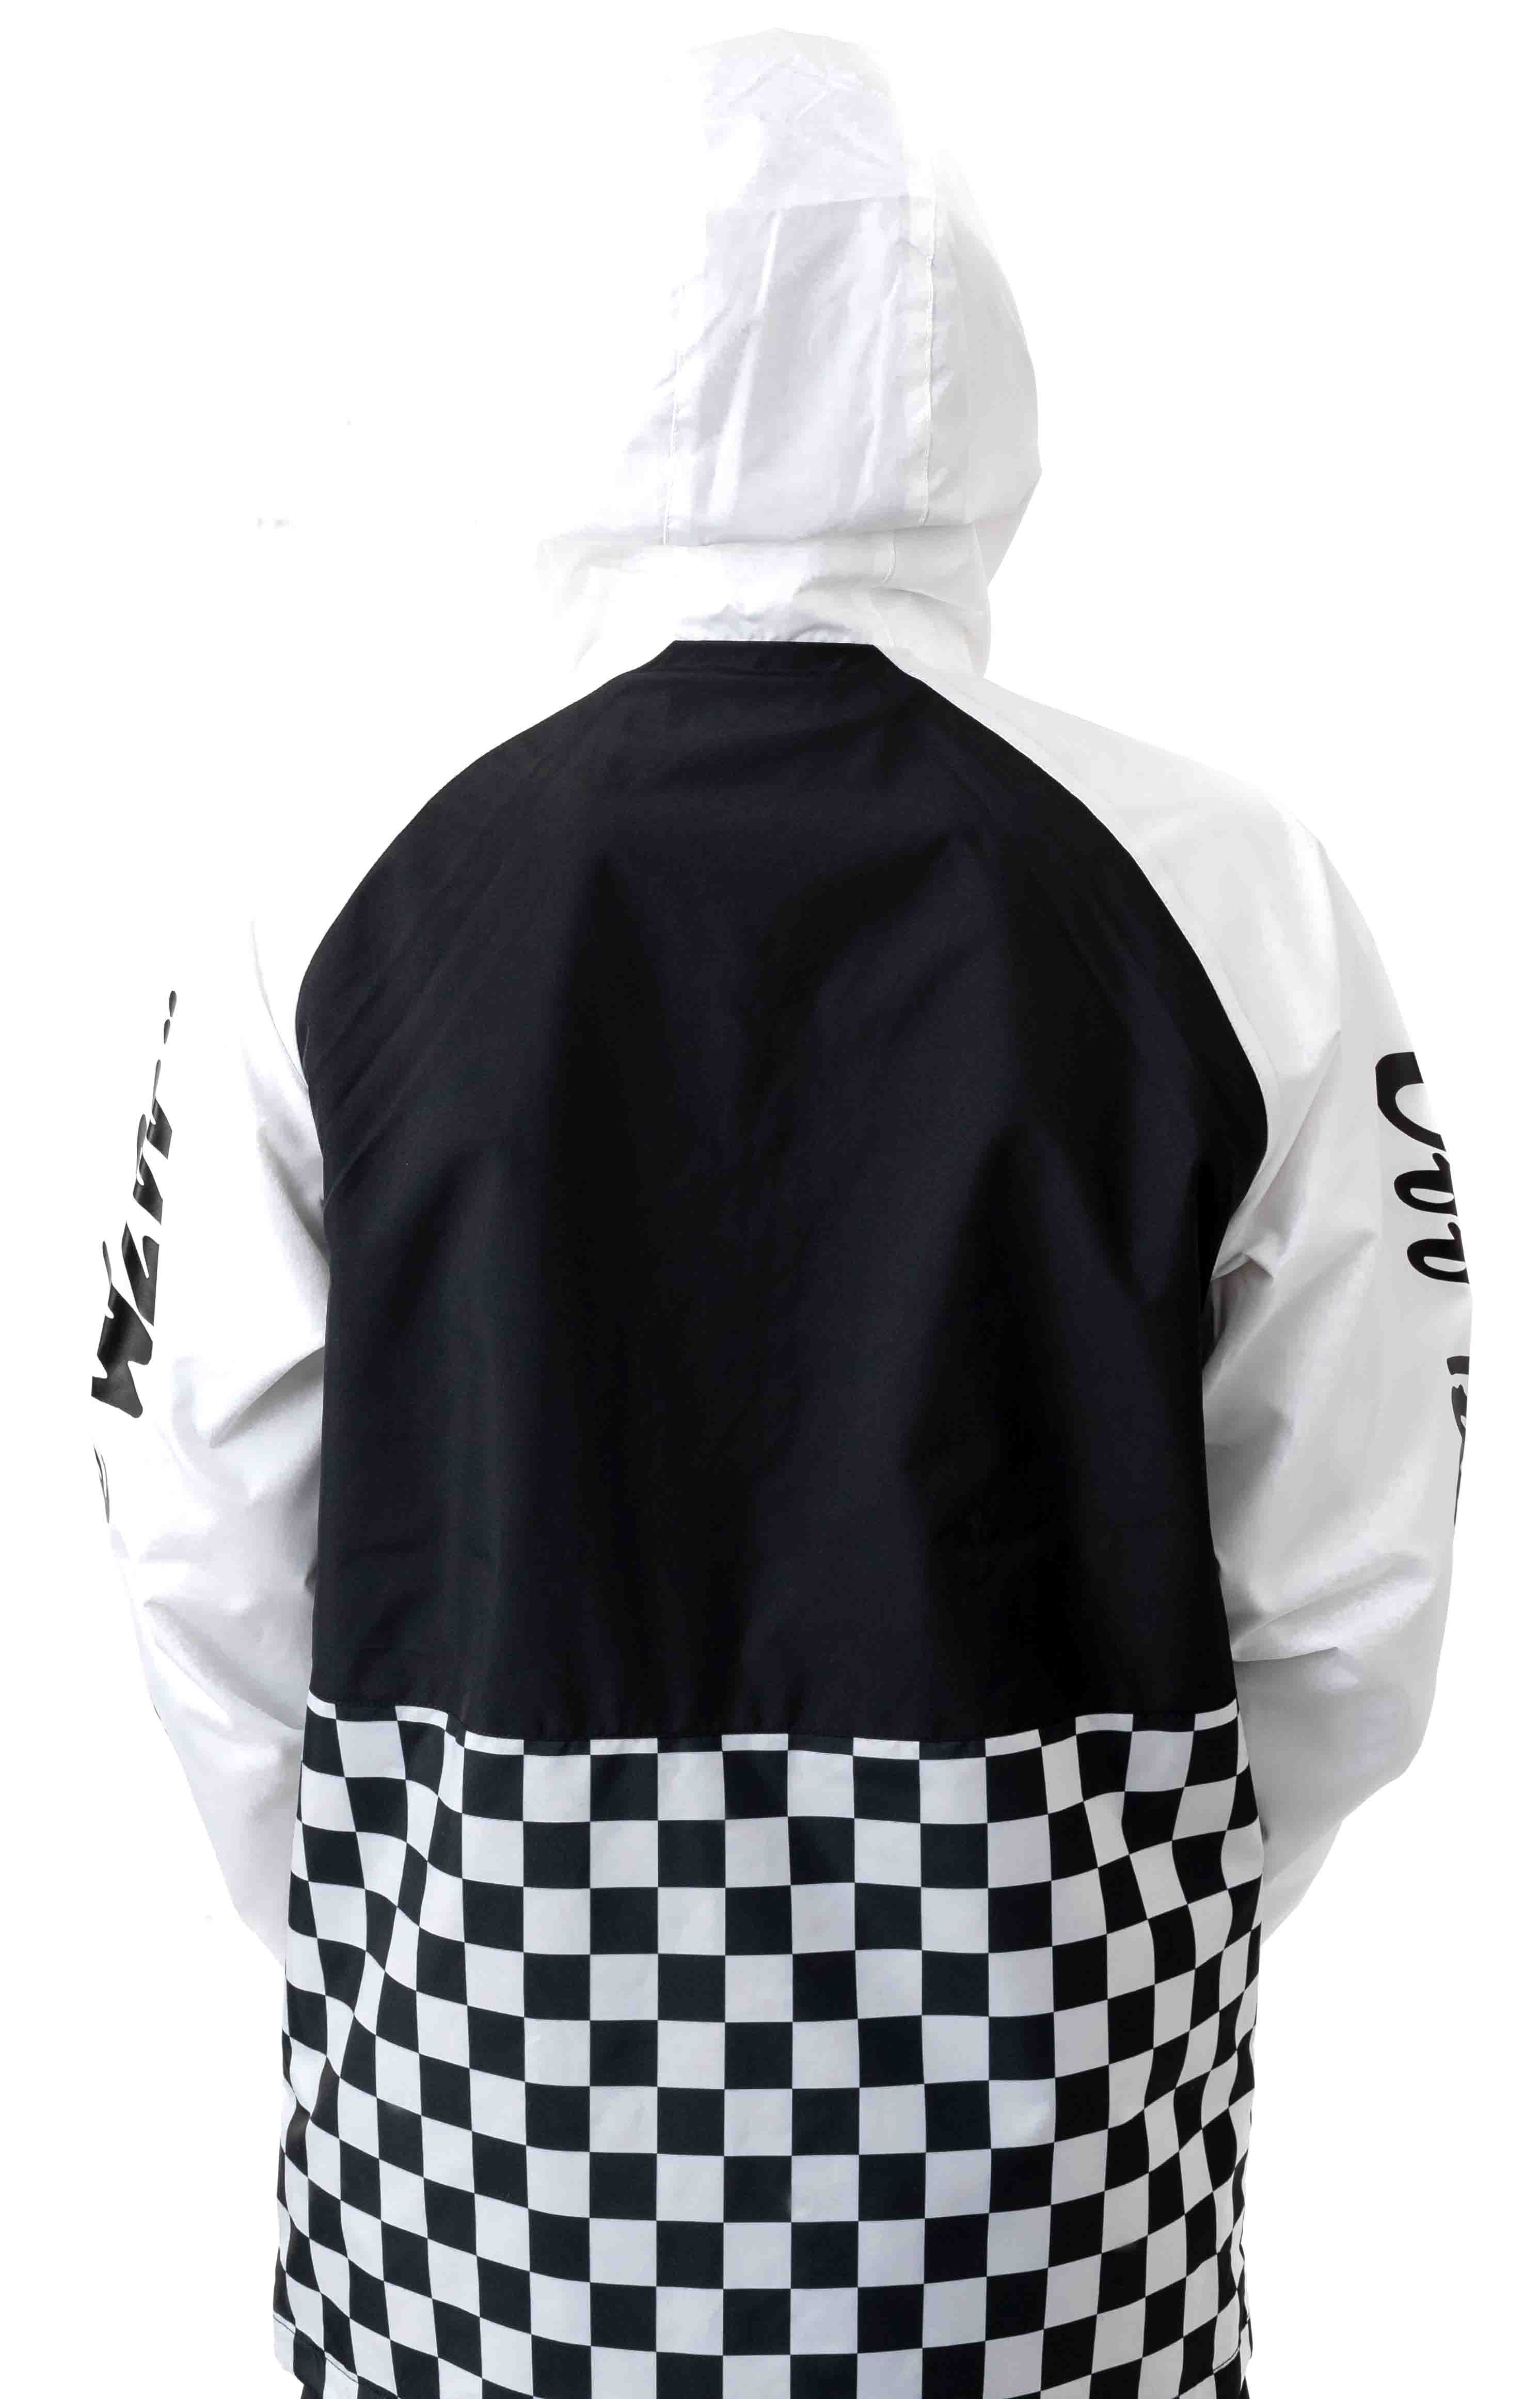 BMX Off The Wall Anorak - Black/White 6